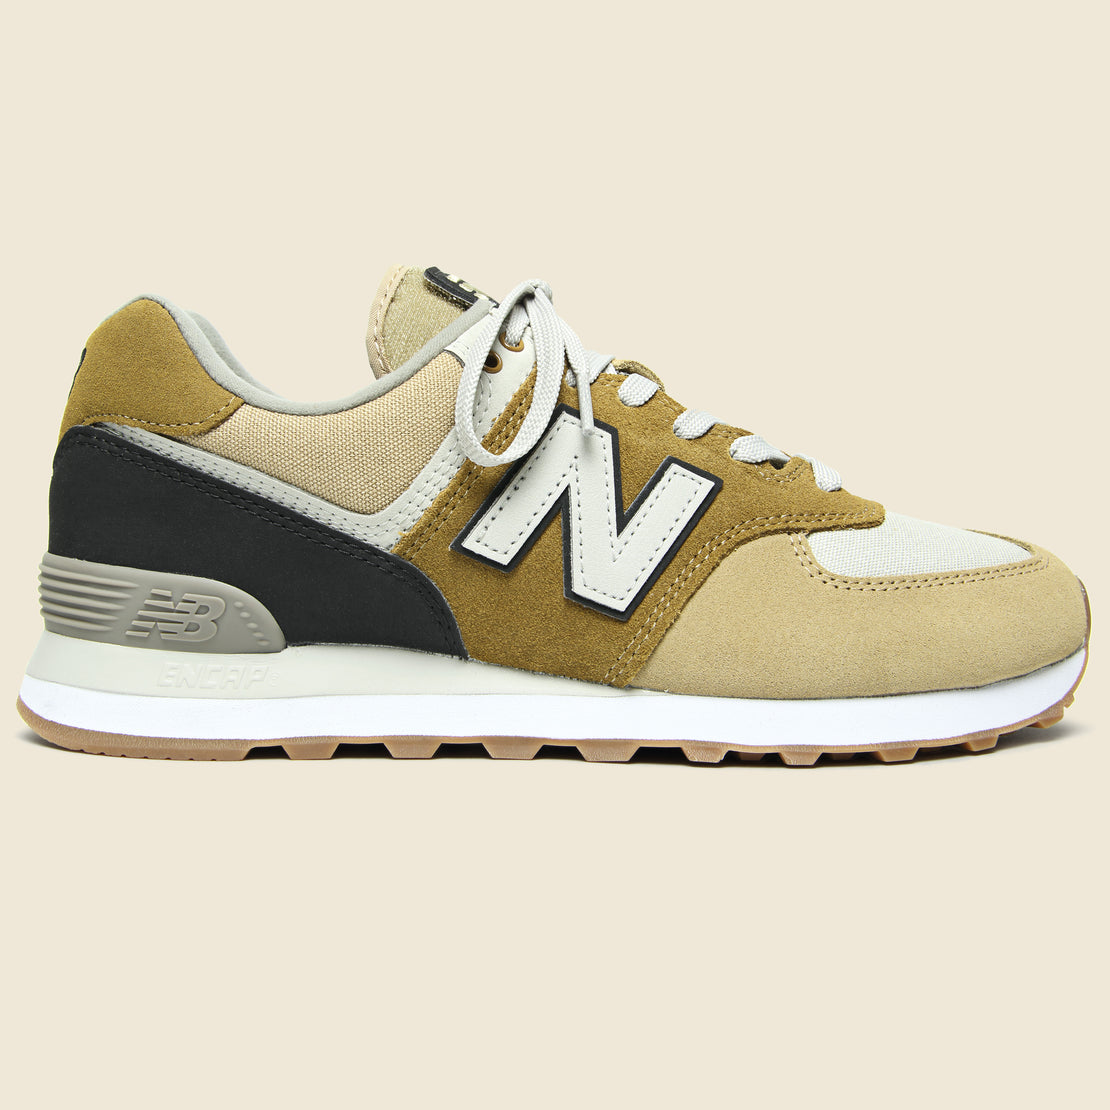 New Balance 574 Sneaker - Hemp/Black